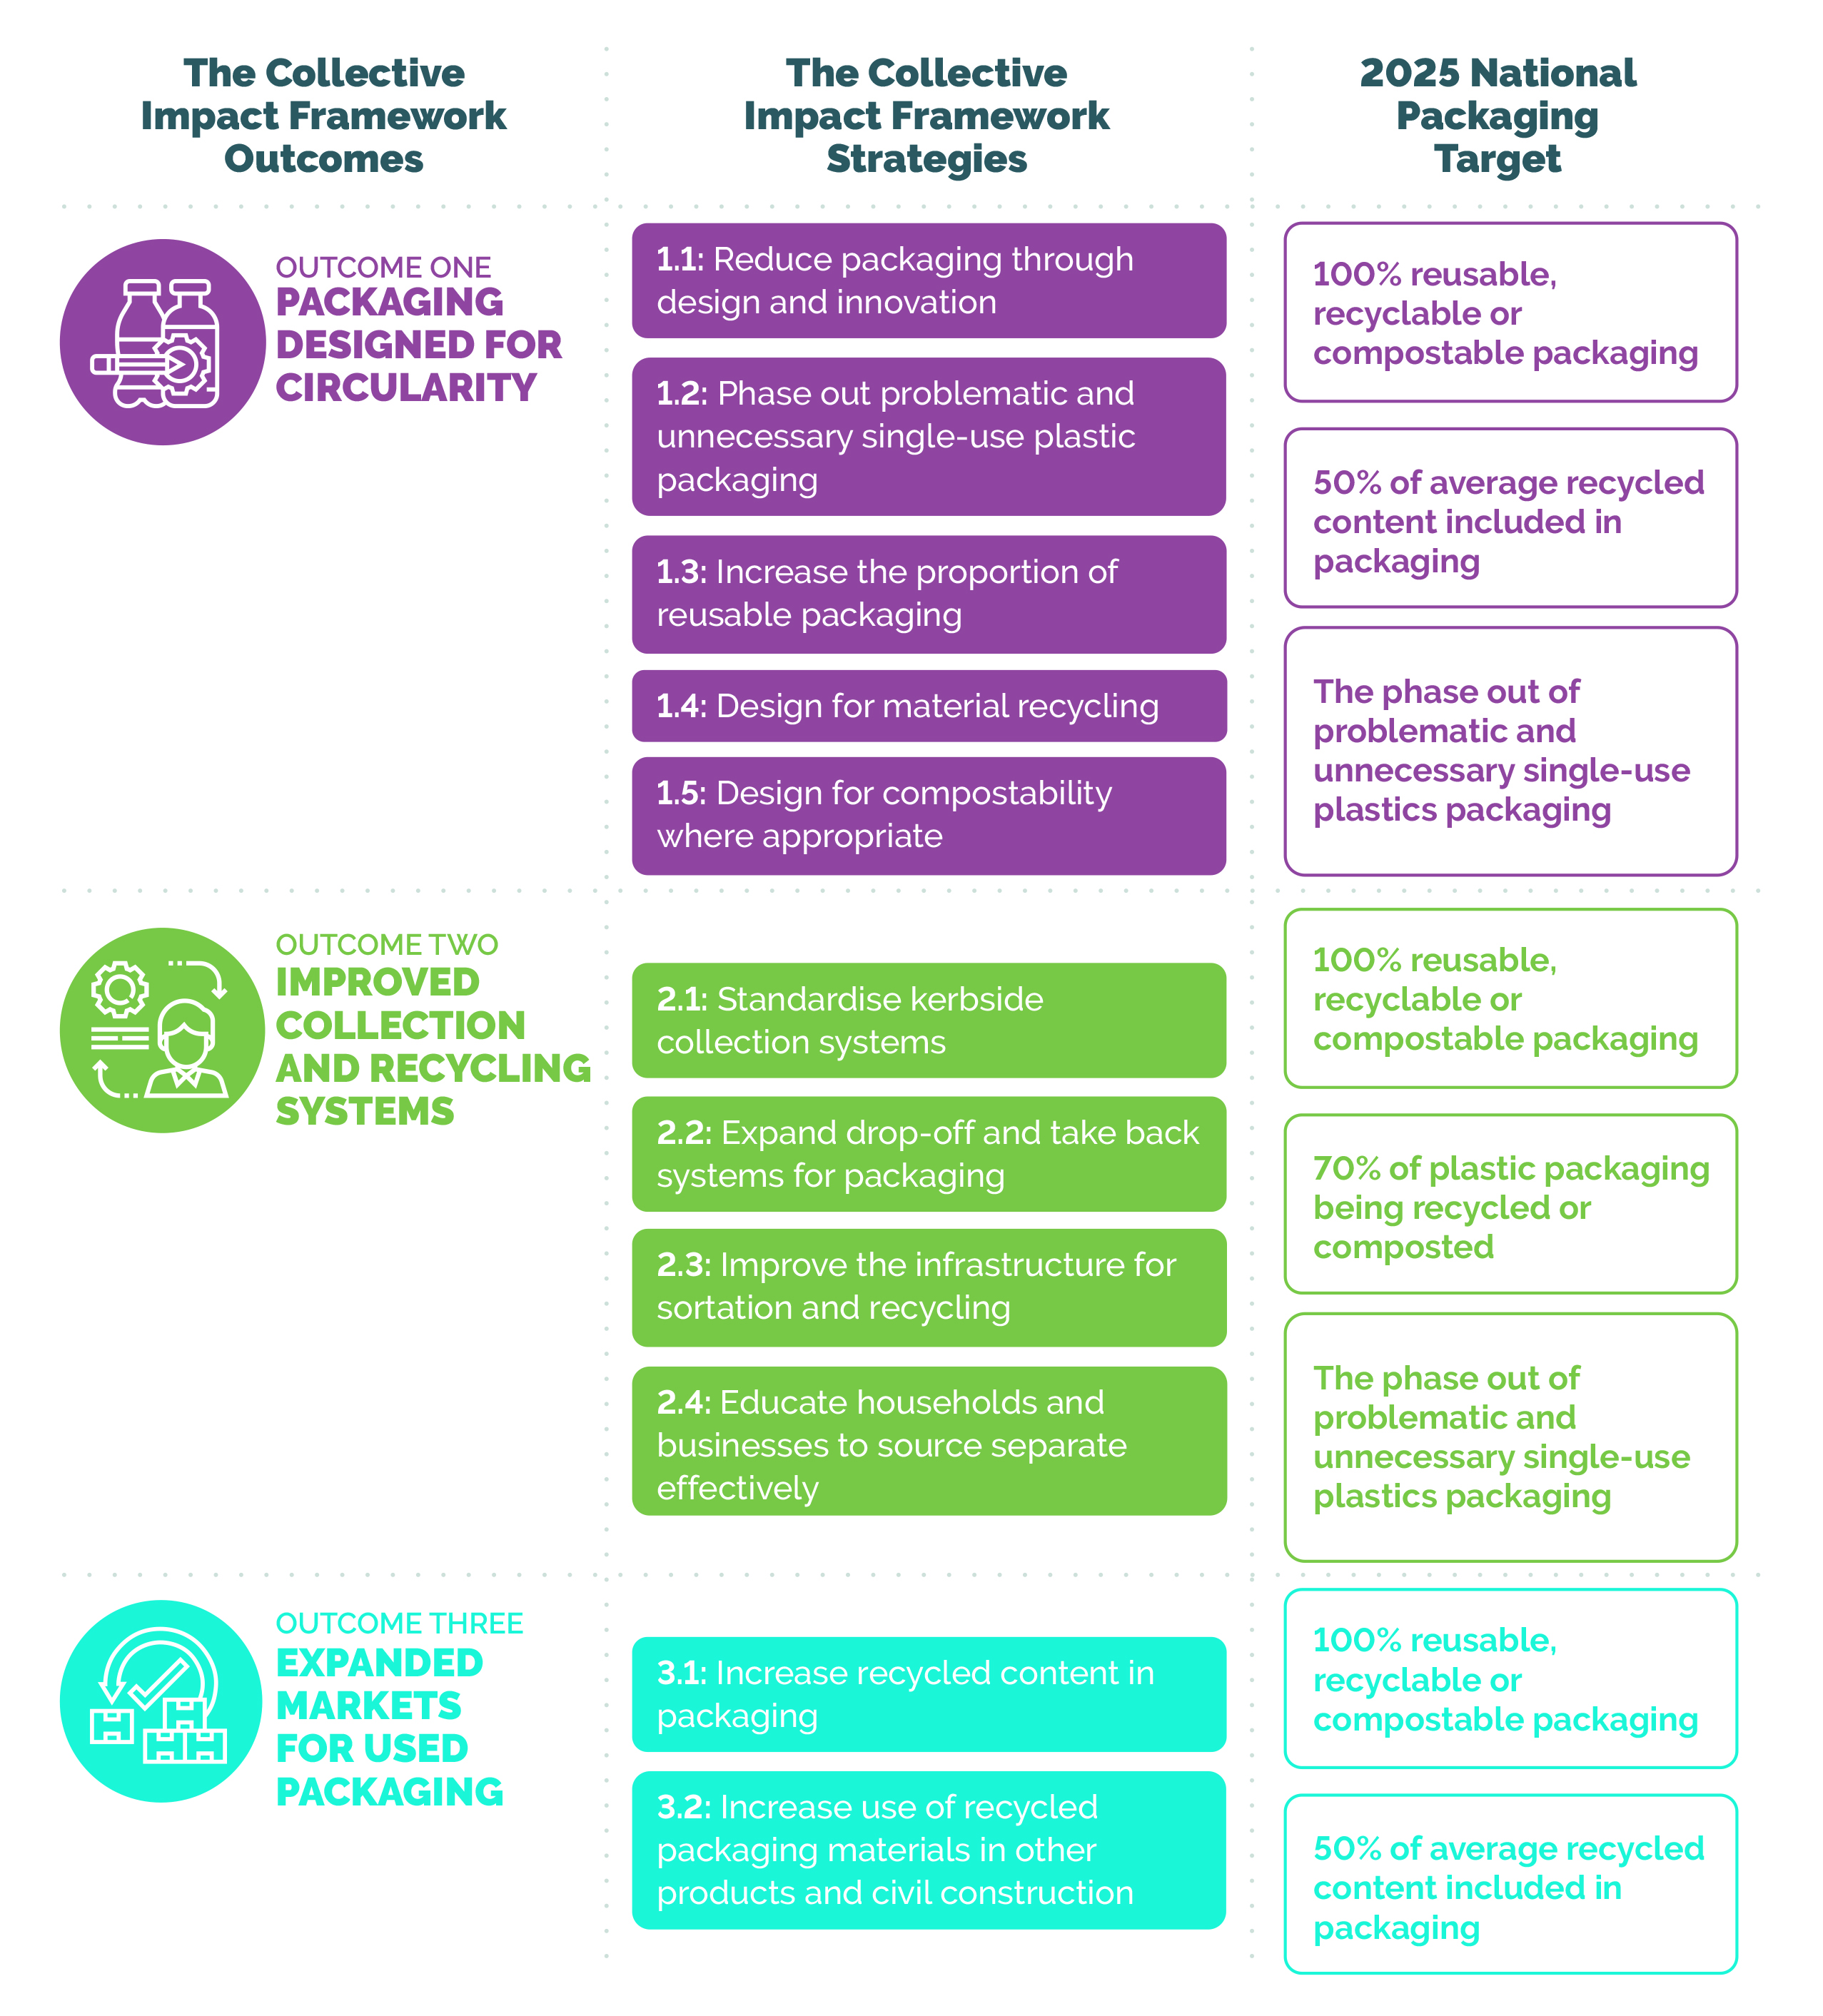 The Collective Impact Framework Outcomes